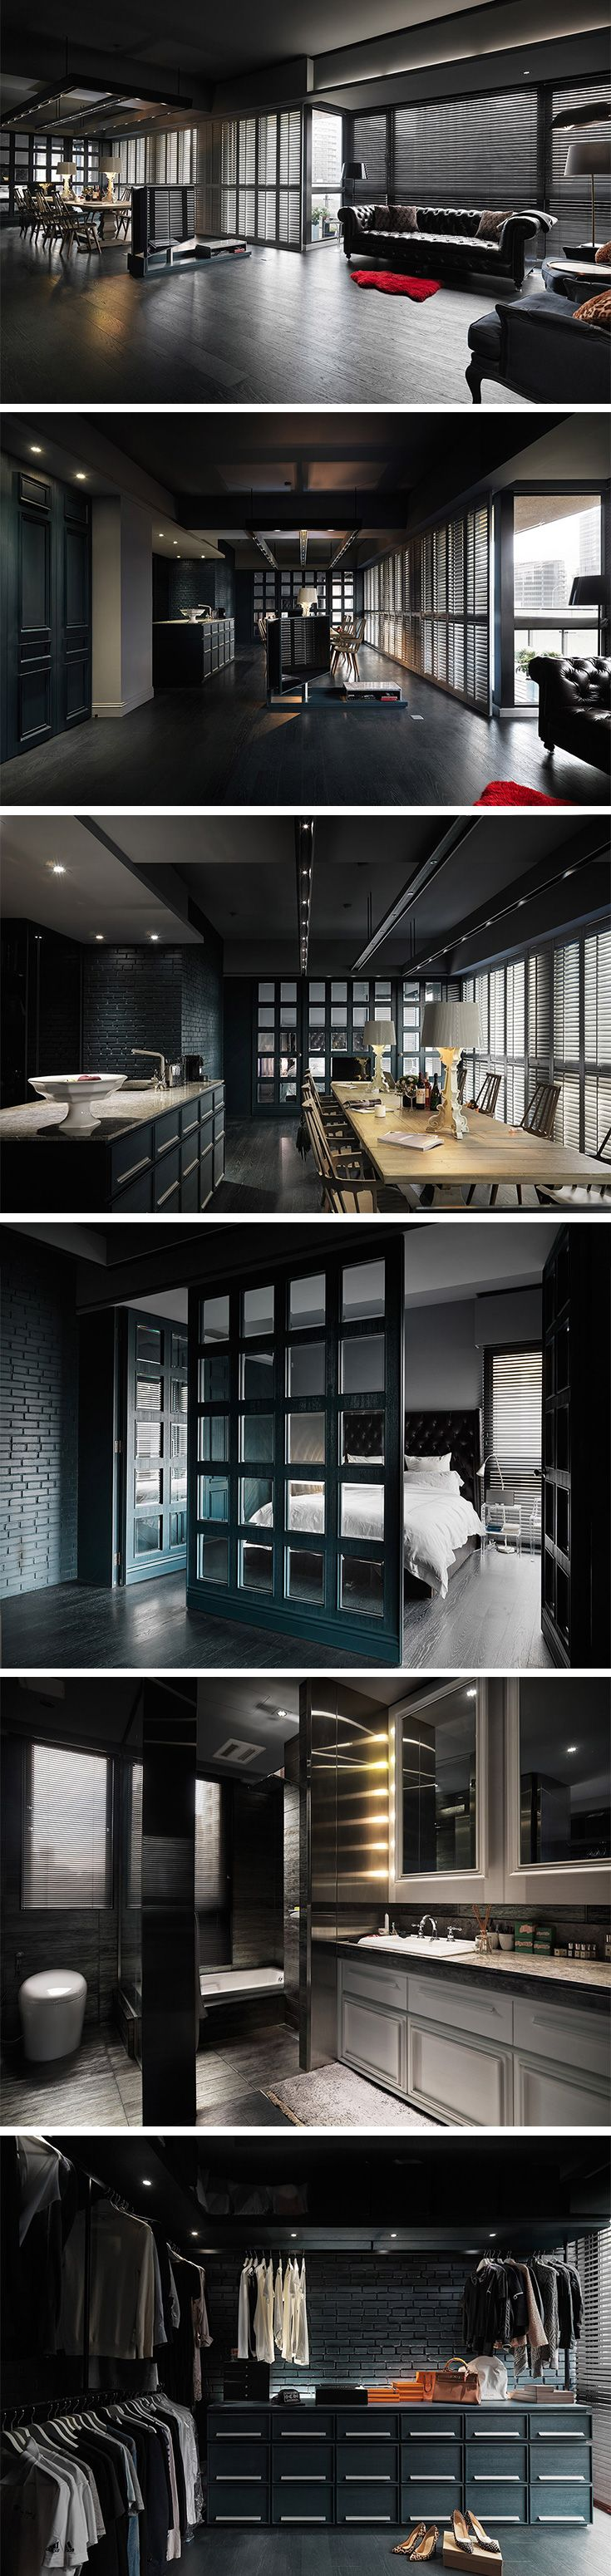 Best 25+ Loft house ideas on Pinterest | Modern loft apartment ...